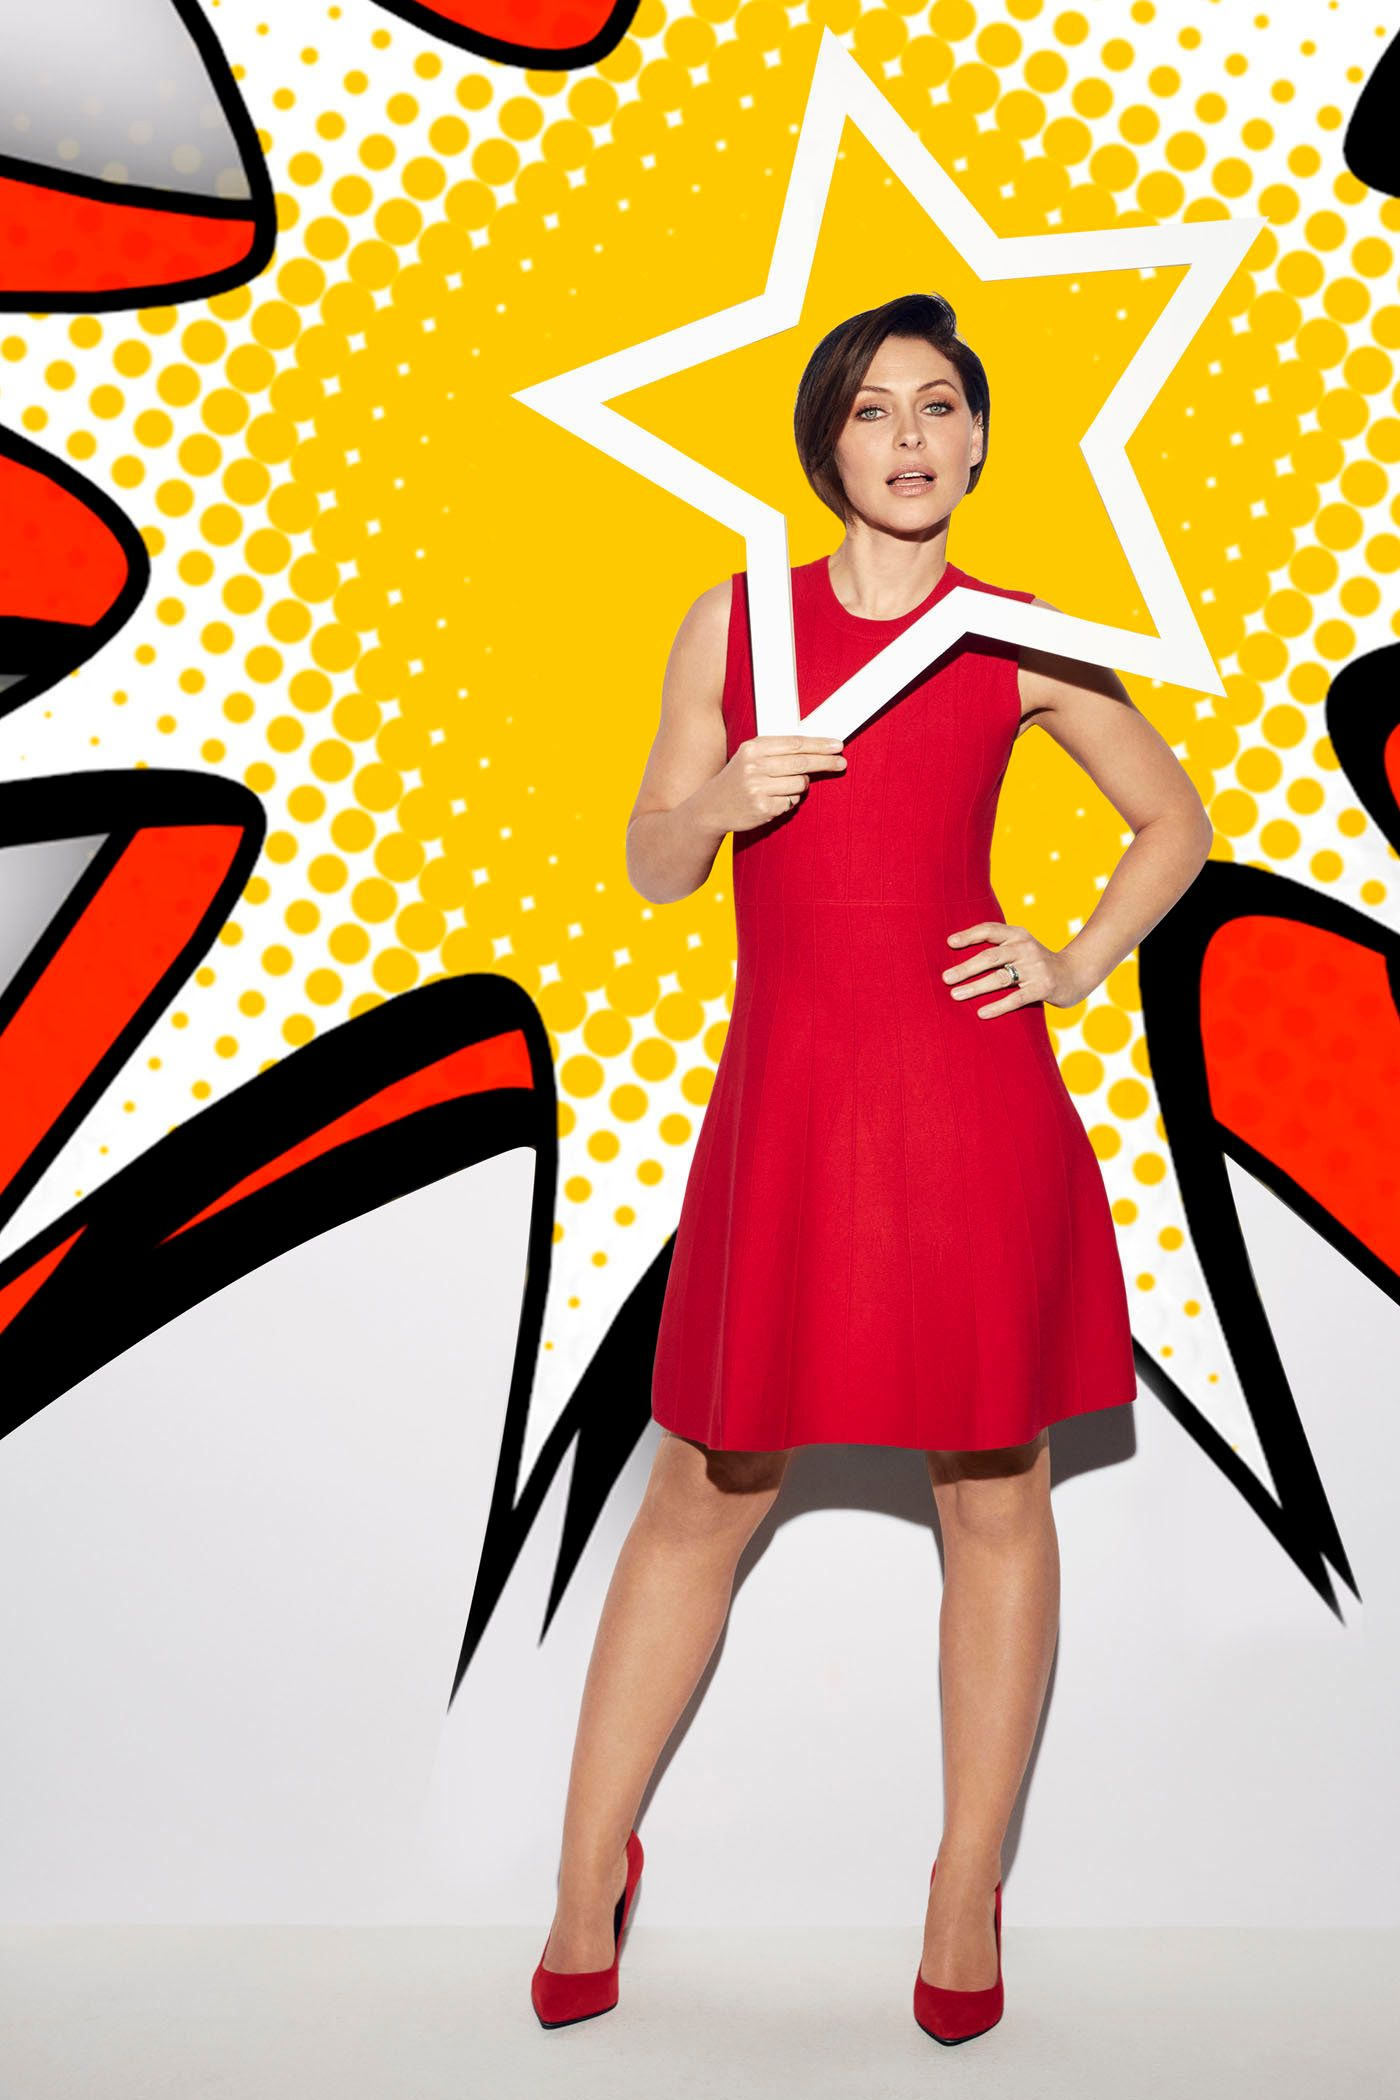 Emma Willis will introduce the new housemates on 3